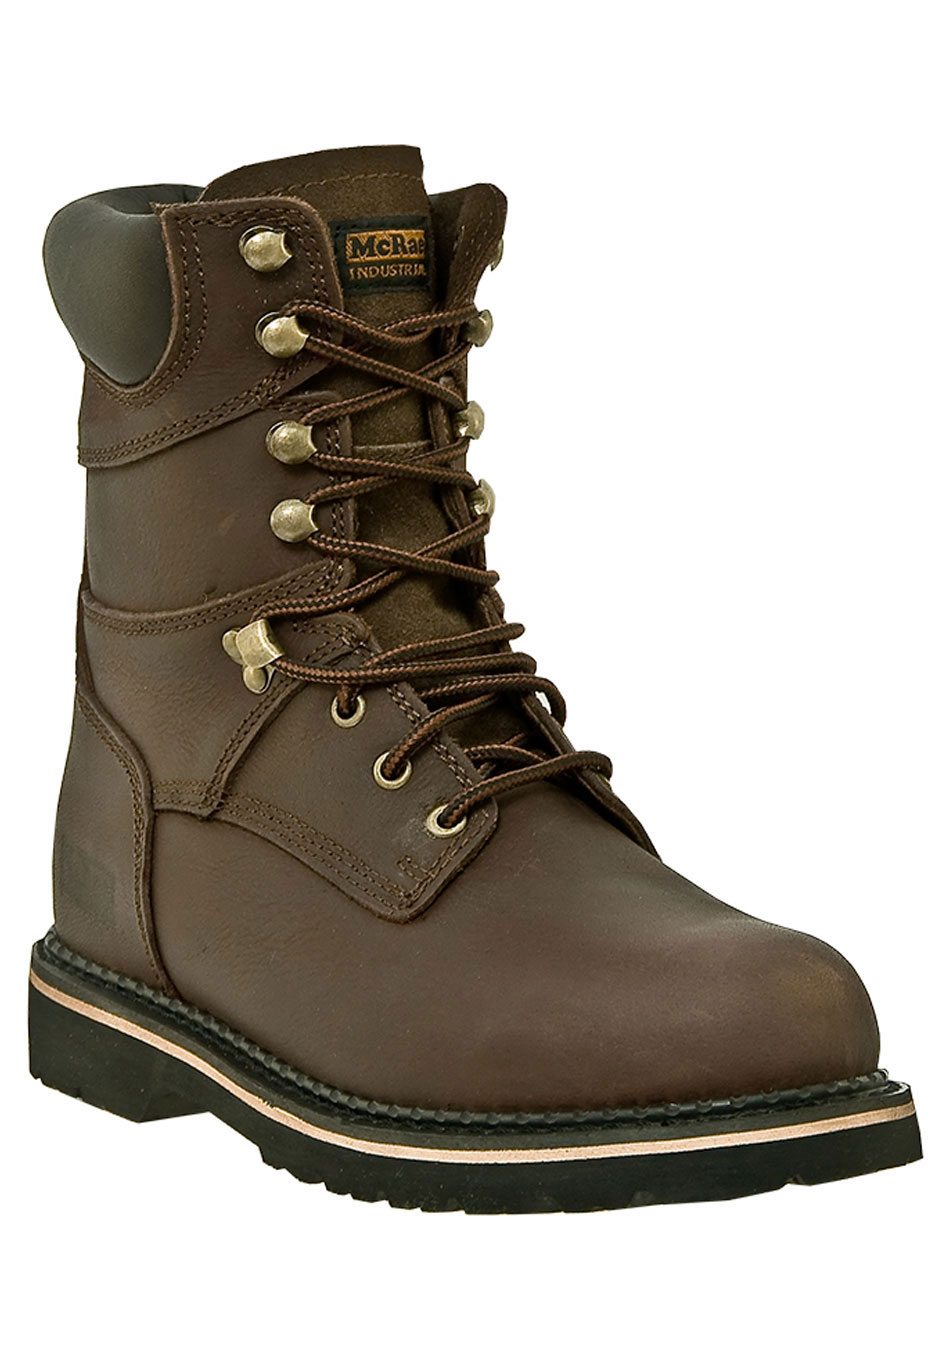 "McRae 8"" Steel Toe Lace Boots,"